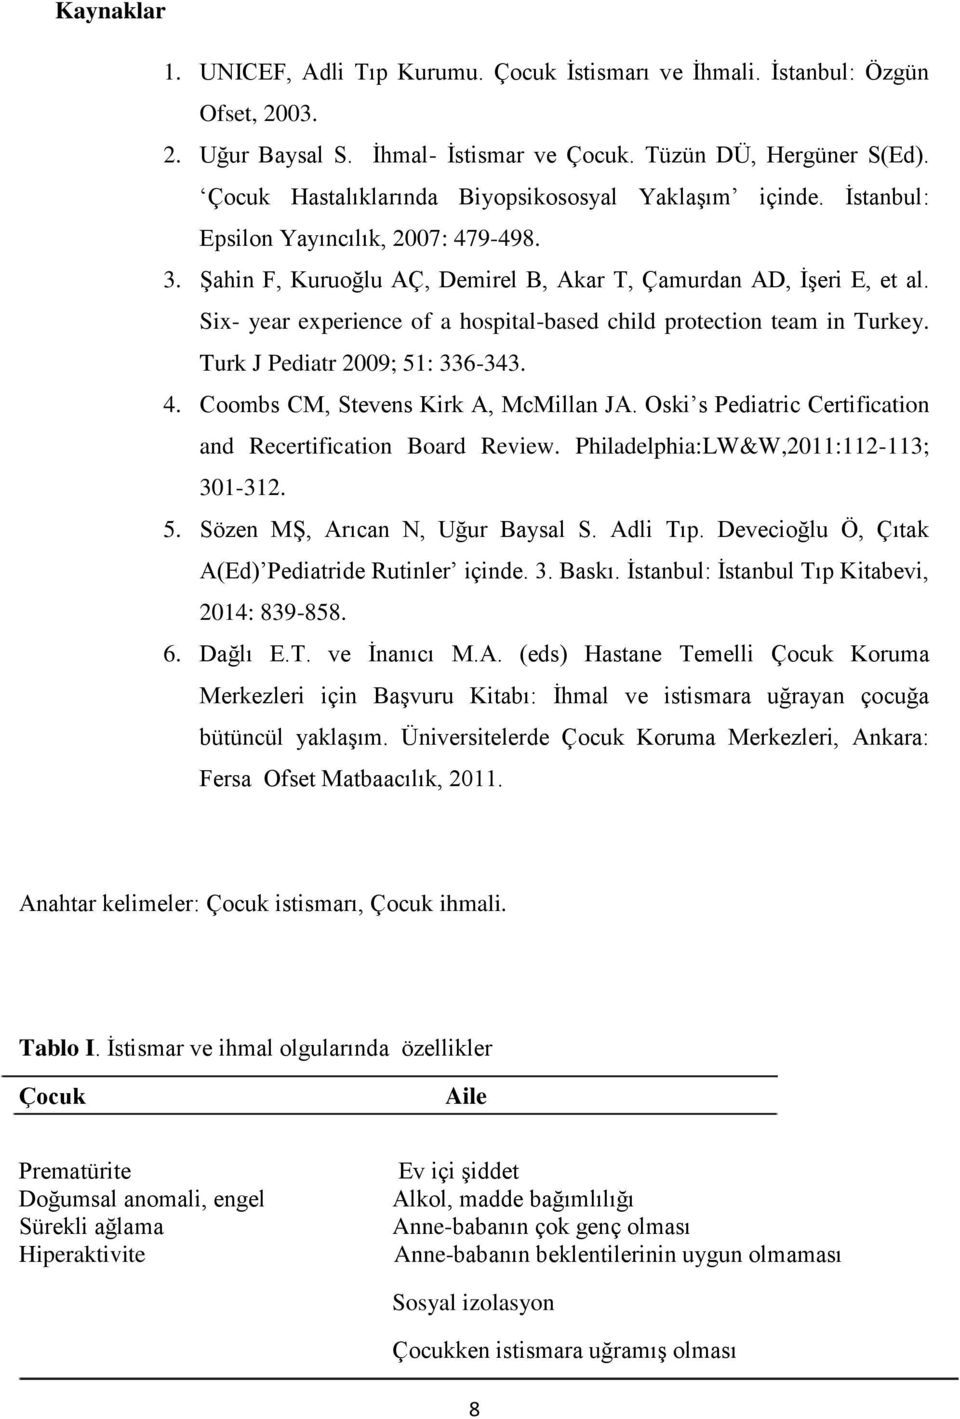 Six- year experience of a hospital-based child protection team in Turkey. Turk J Pediatr 2009; 51: 336-343. 4. Coombs CM, Stevens Kirk A, McMillan JA.